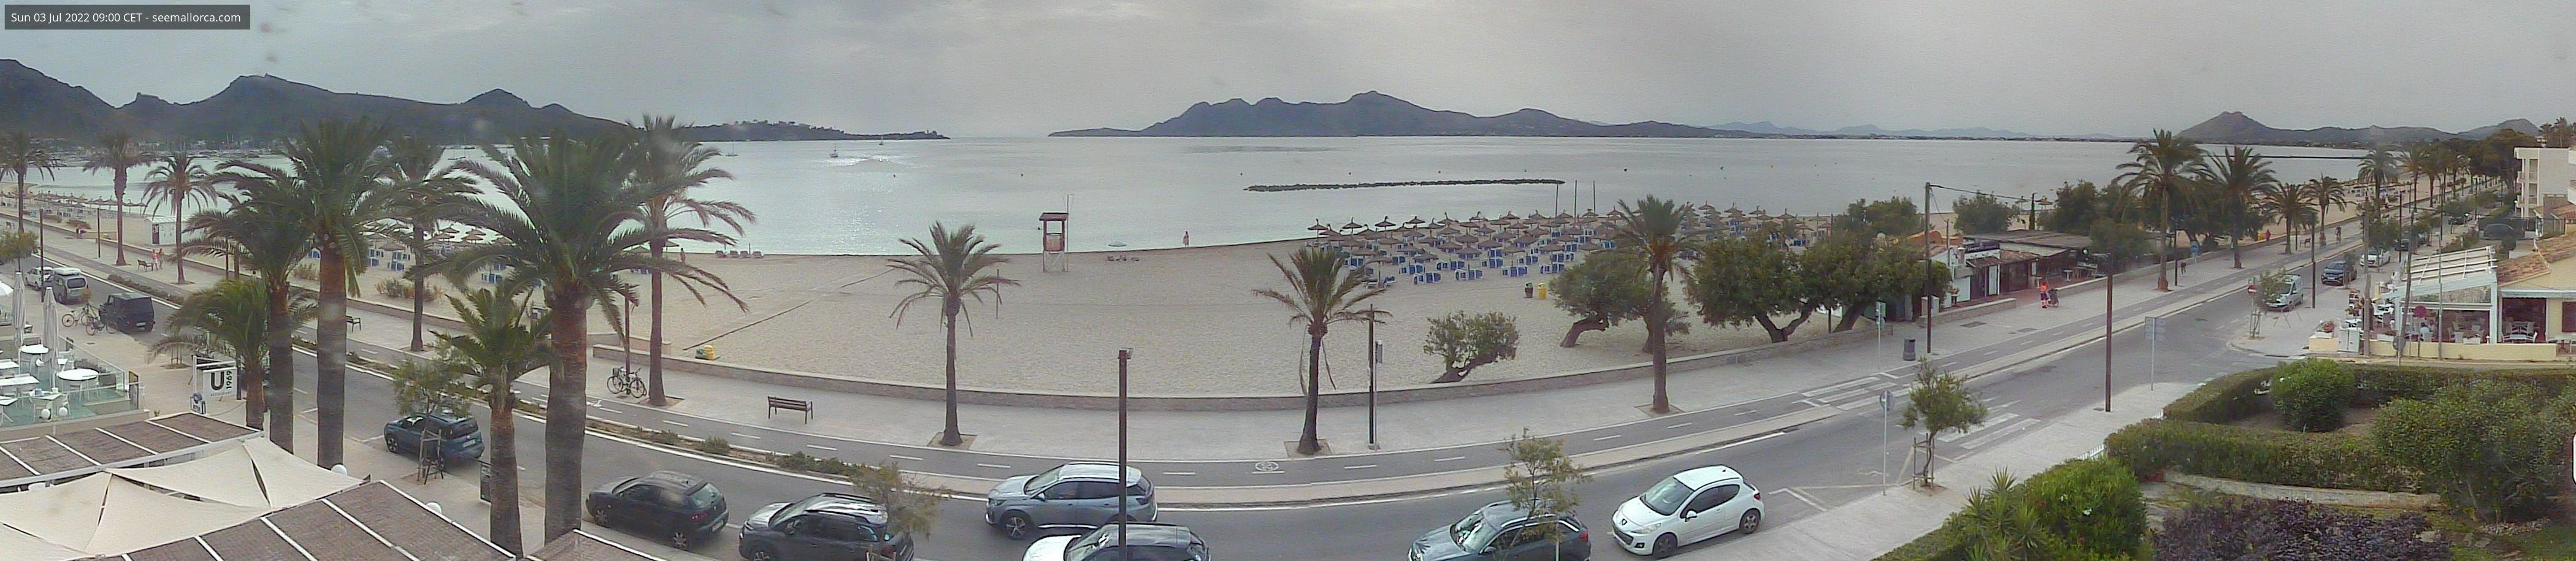 Webcam Mallorca - Port de Pollenca